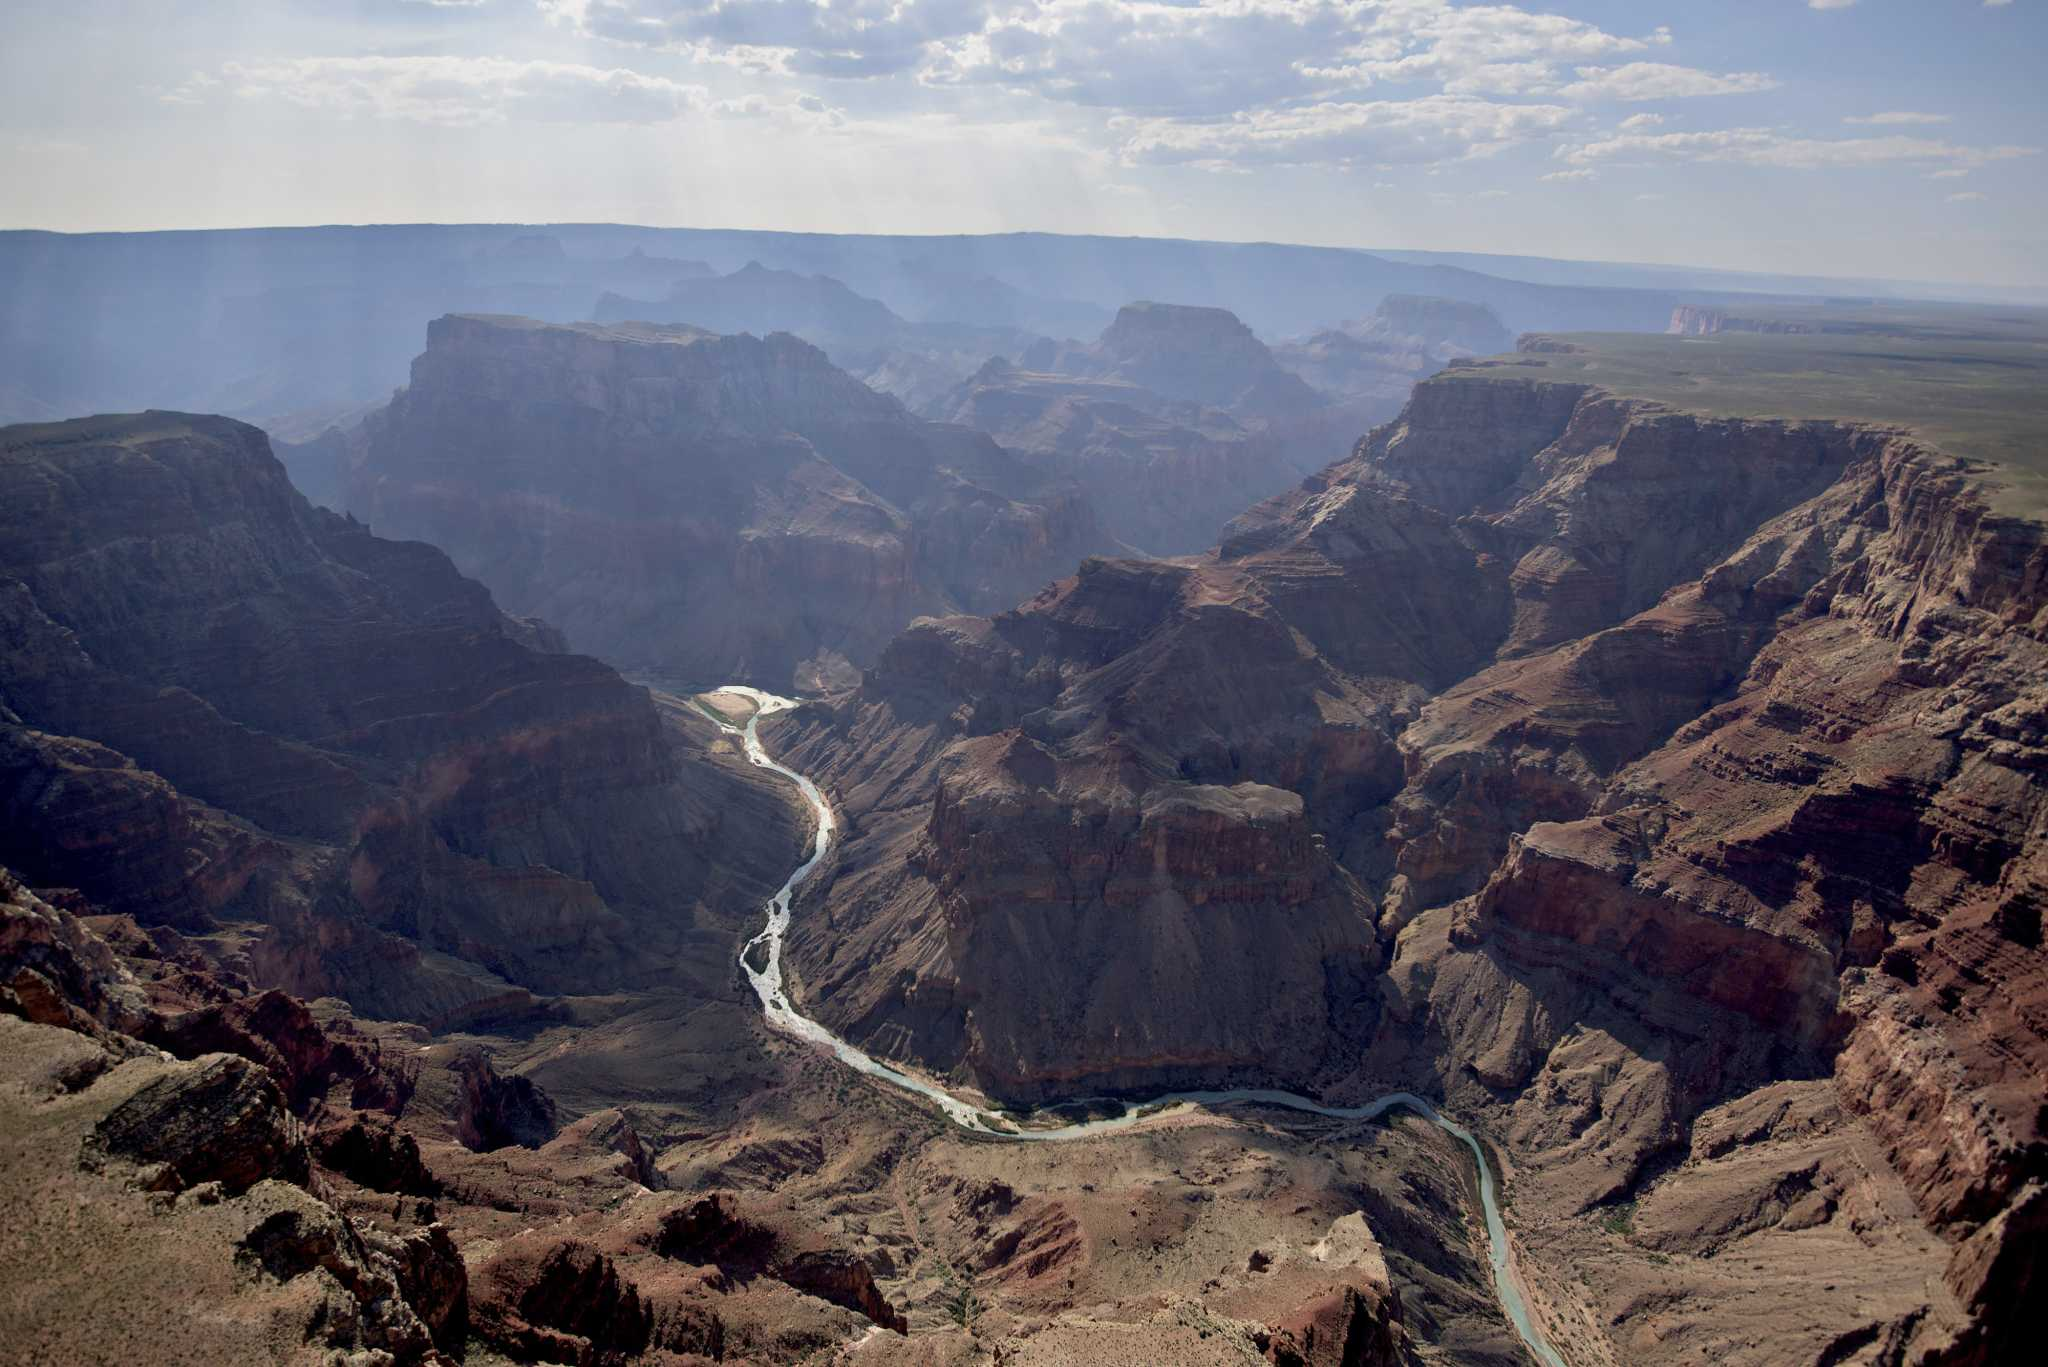 Trading water for cash along the Colorado River